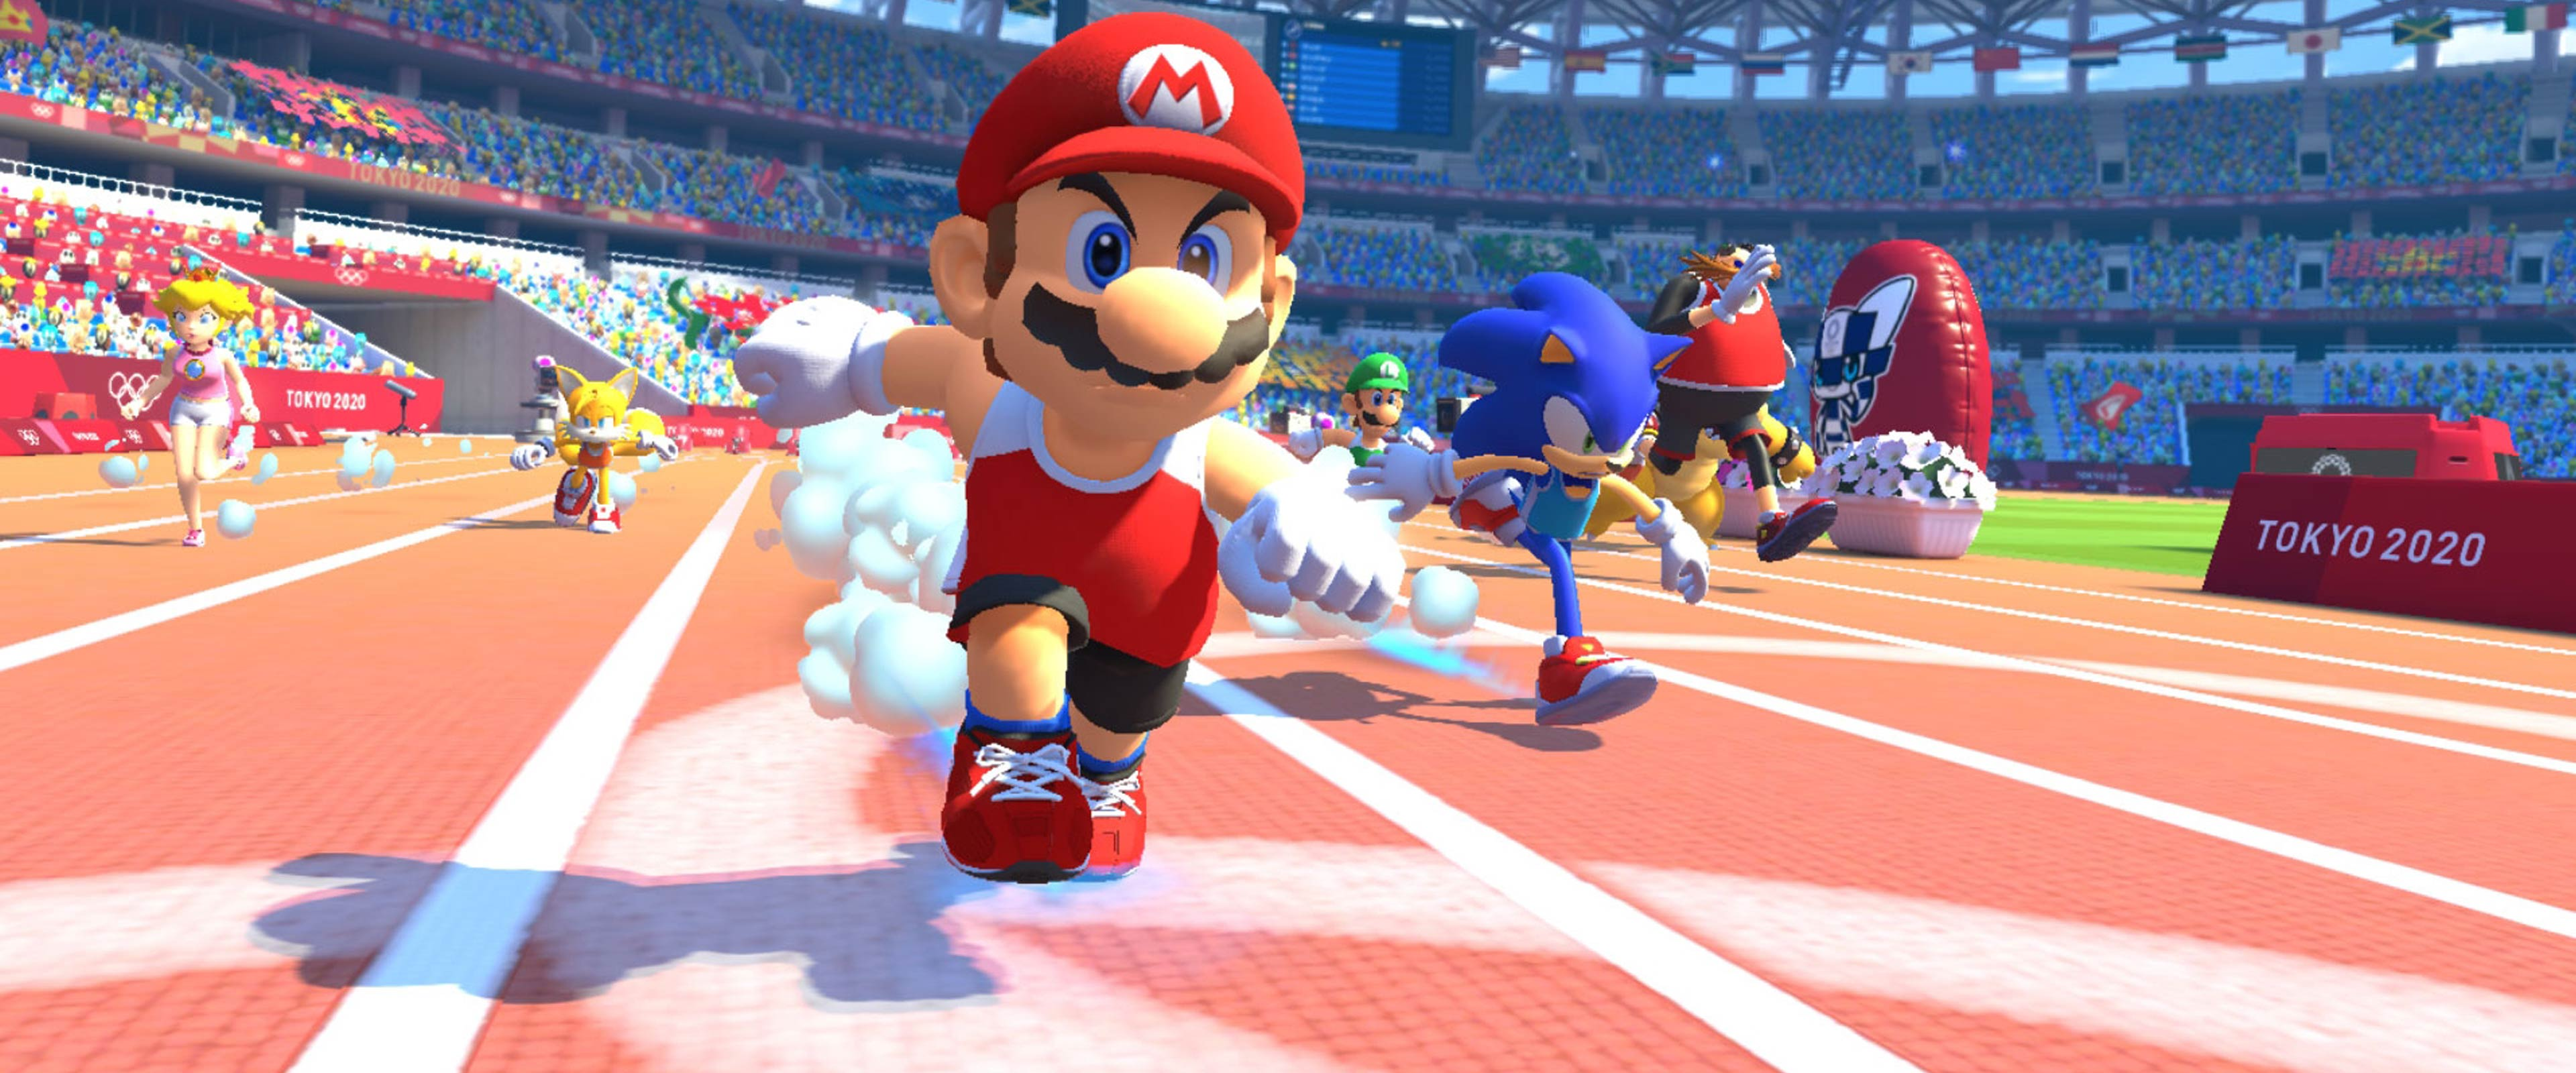 Nintendo Games 2020.Mario And Sonic Set For New Olympic Adventure In Tokyo 2020